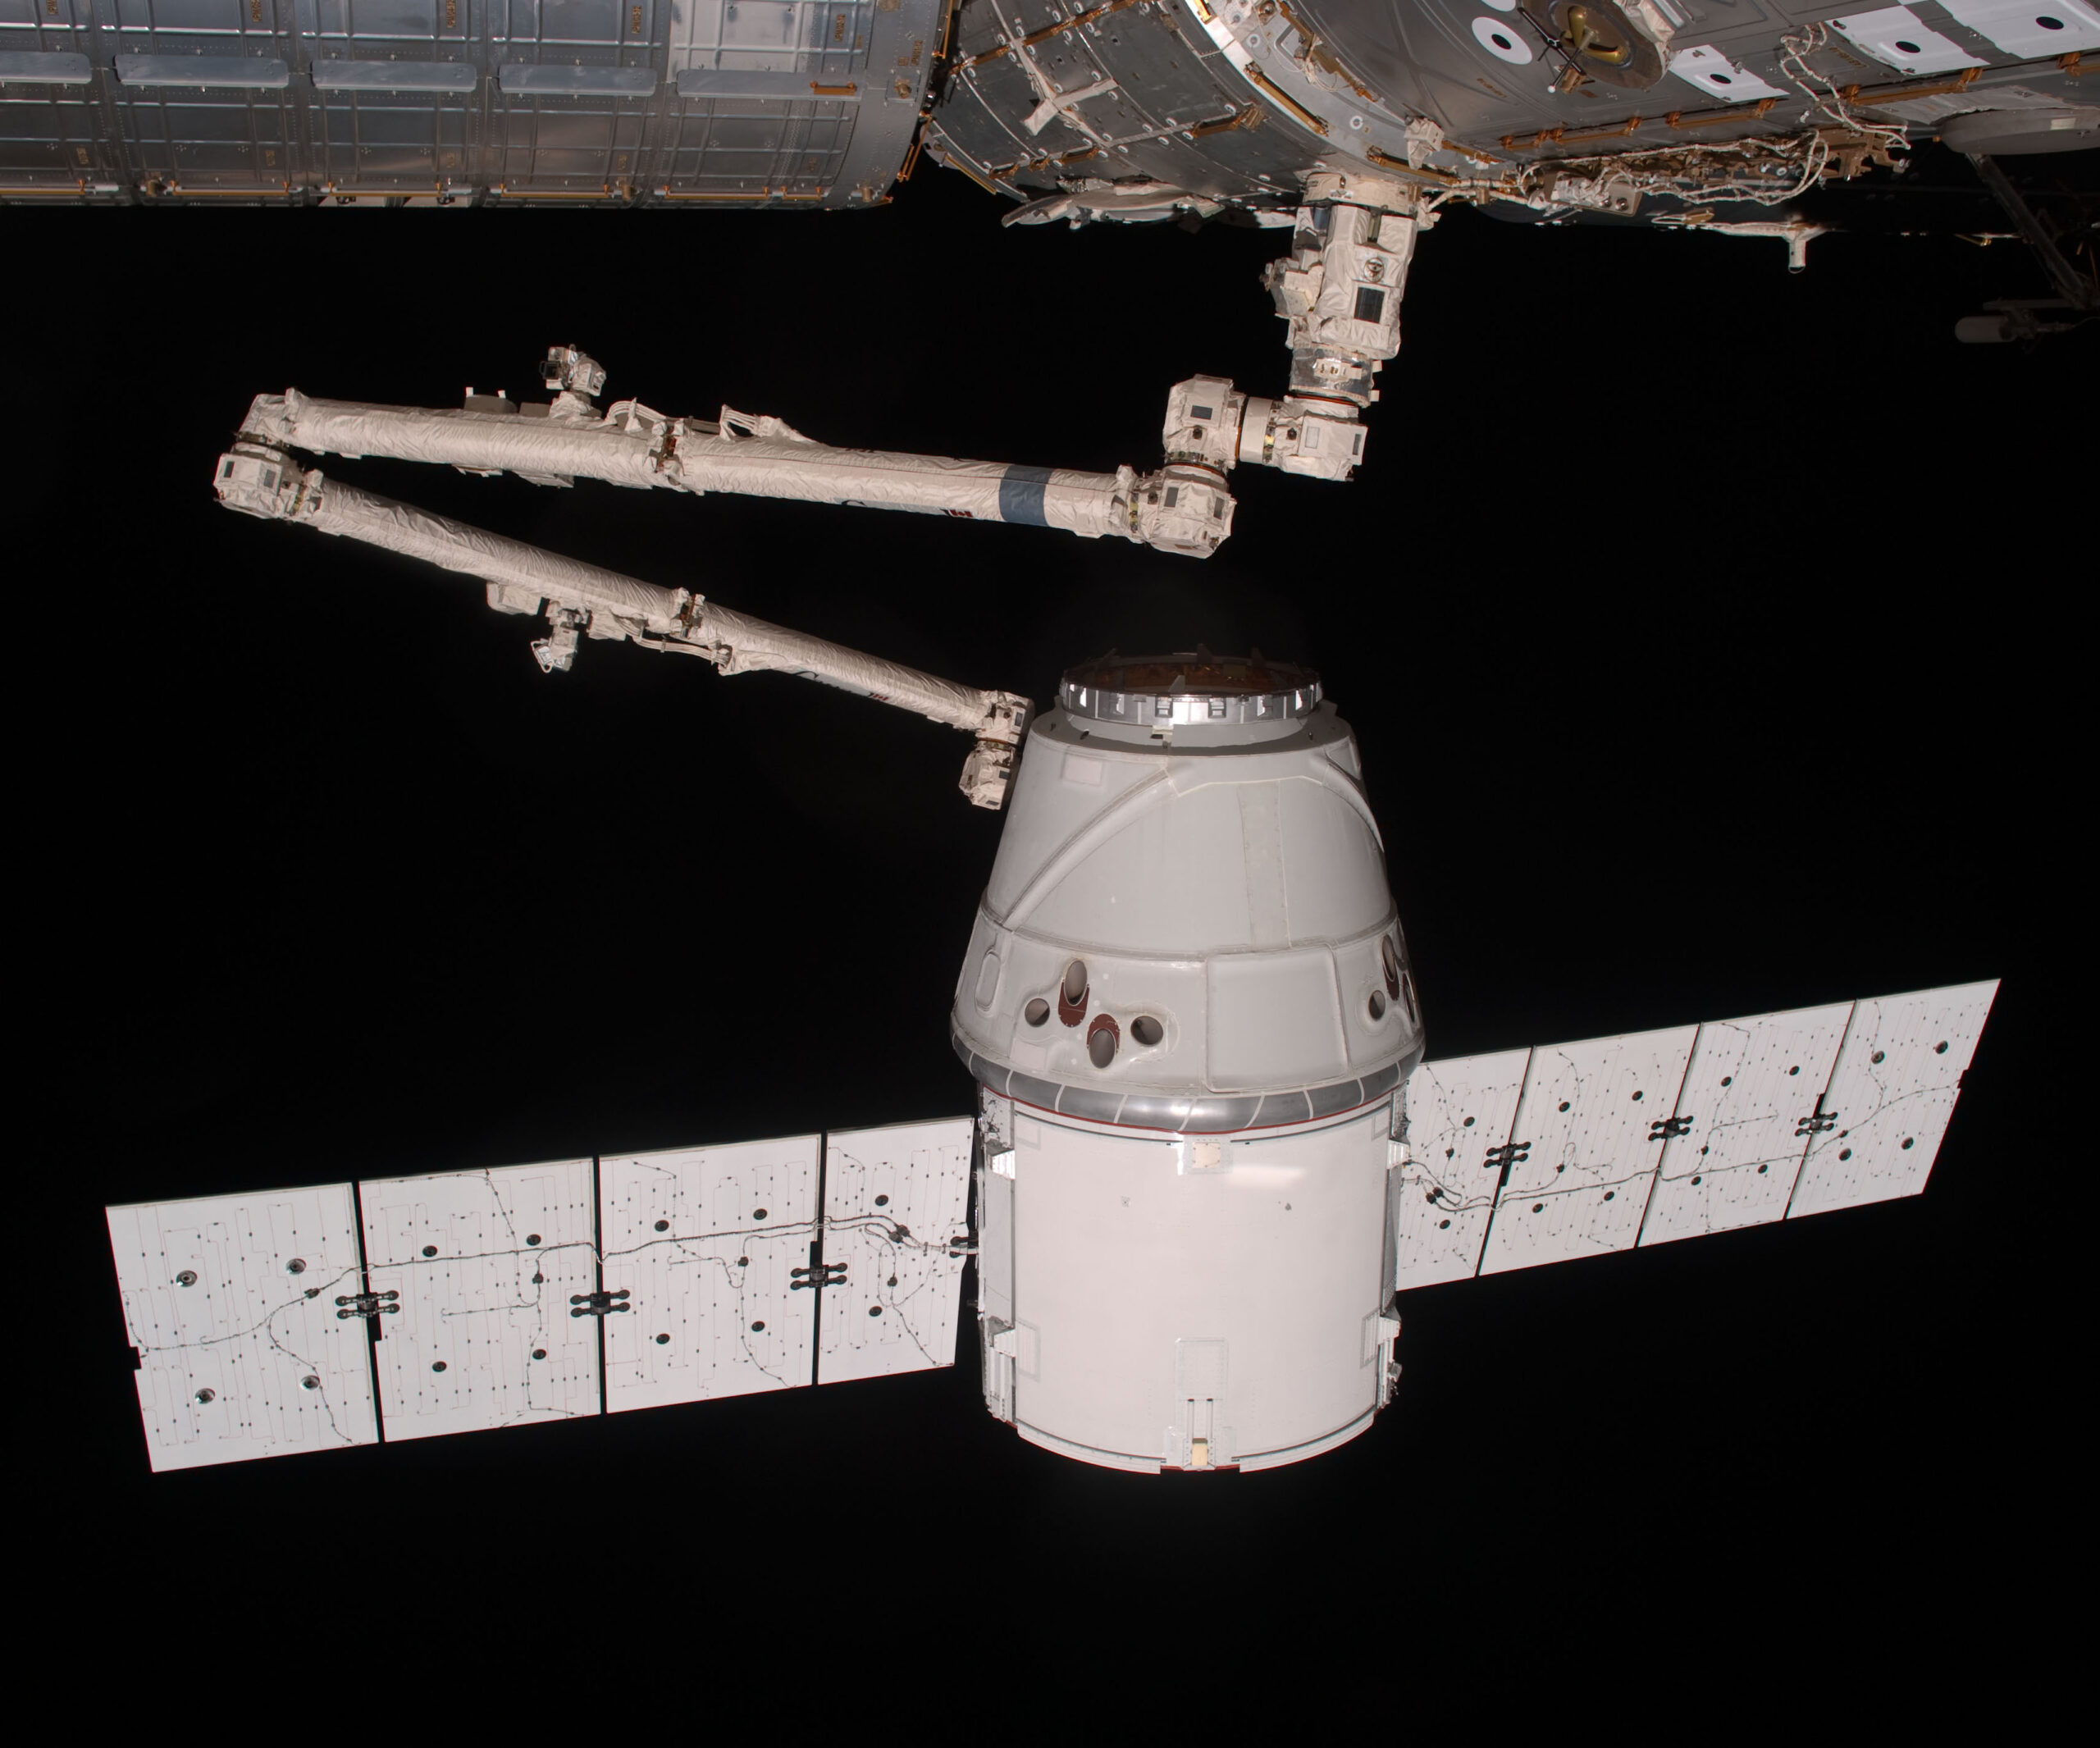 SpaceX Dragon Canadarm berthed to International Space Station